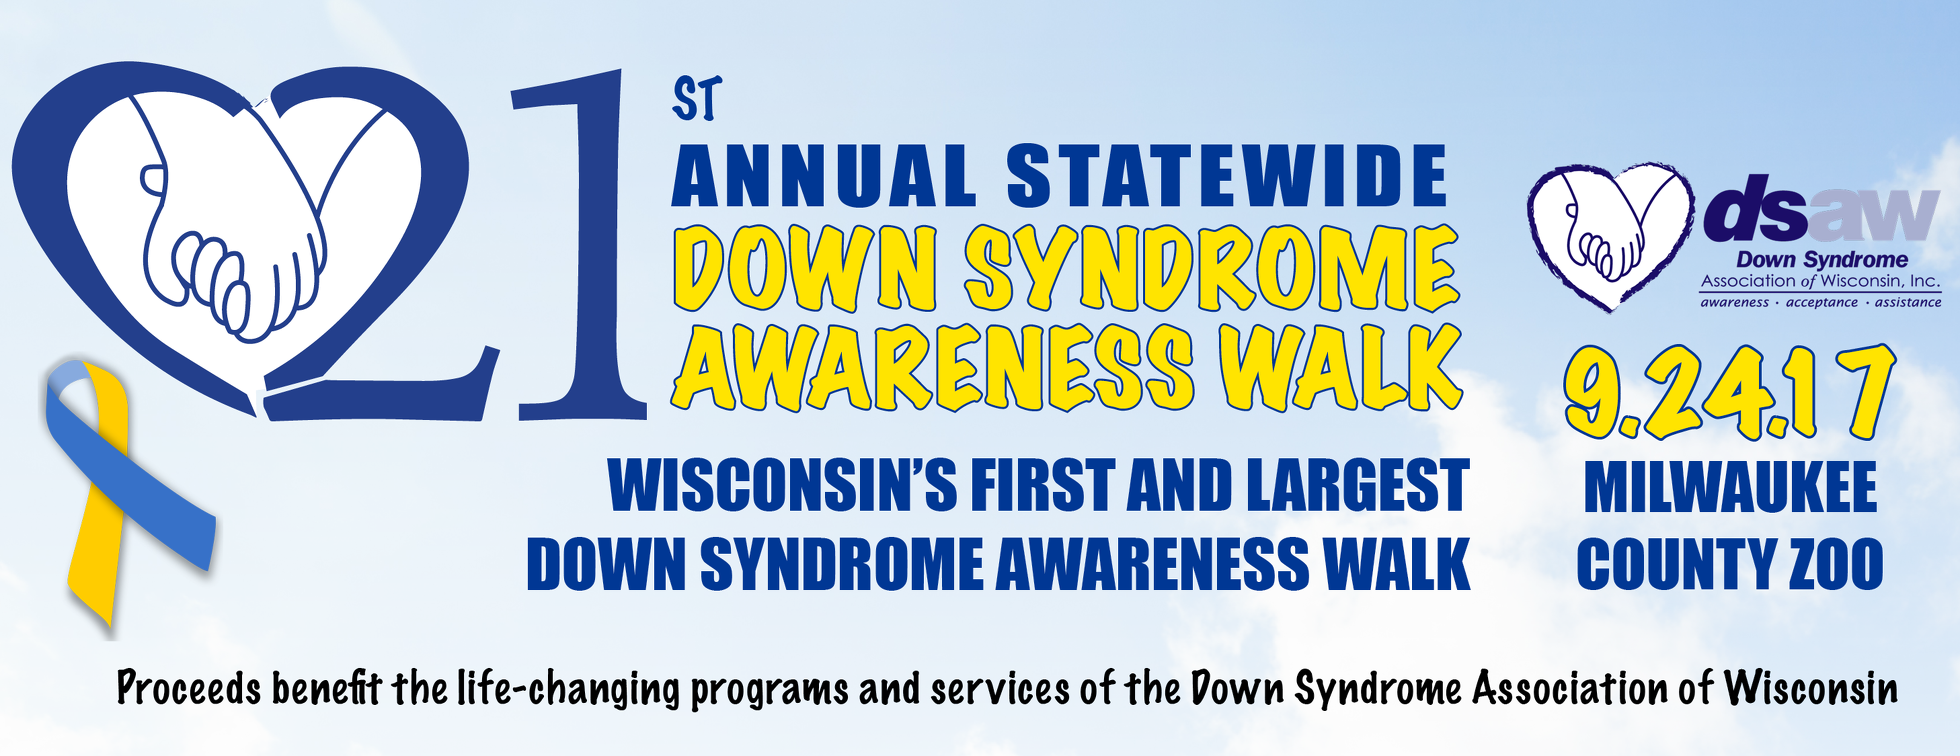 21st Annual Statewide Down Syndrome Awareness Walk & 5K Run, Roll & Stroll